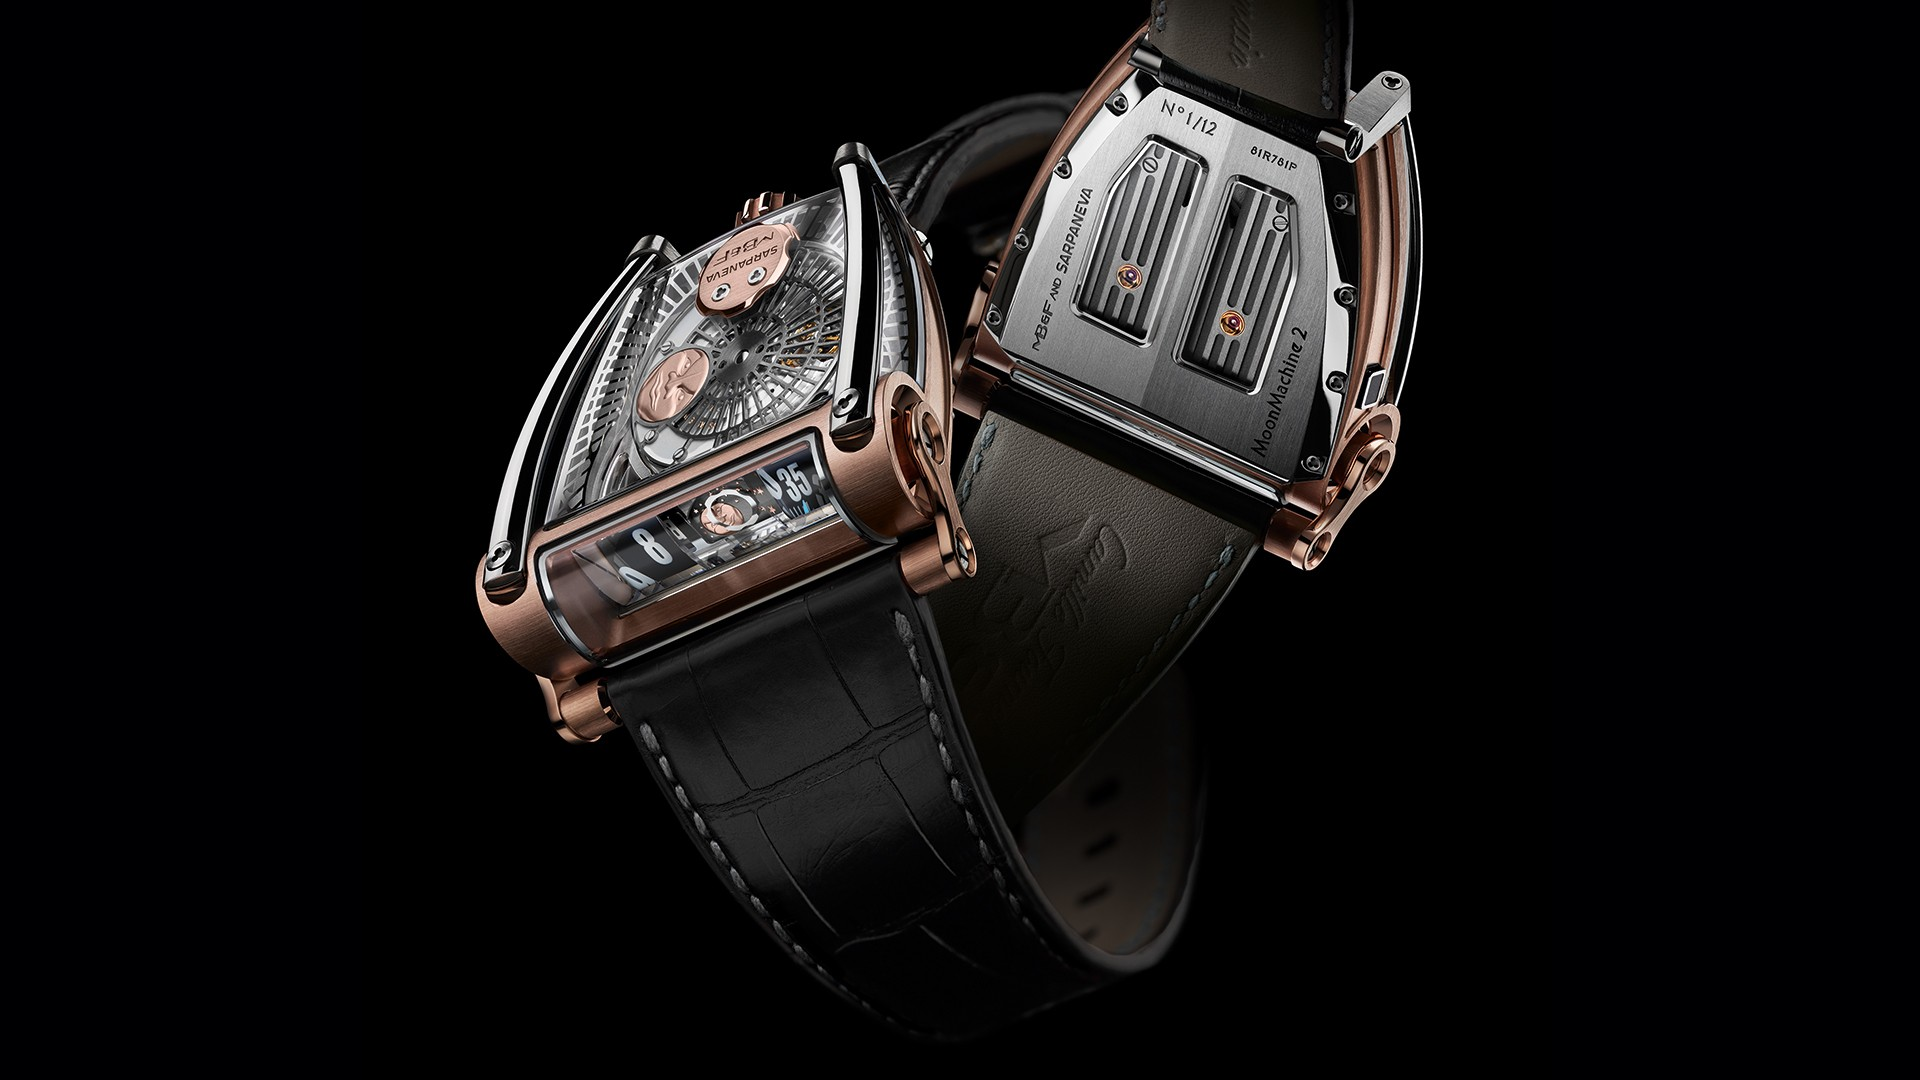 MB&F Moonmachine 2 watch SIHH 2018